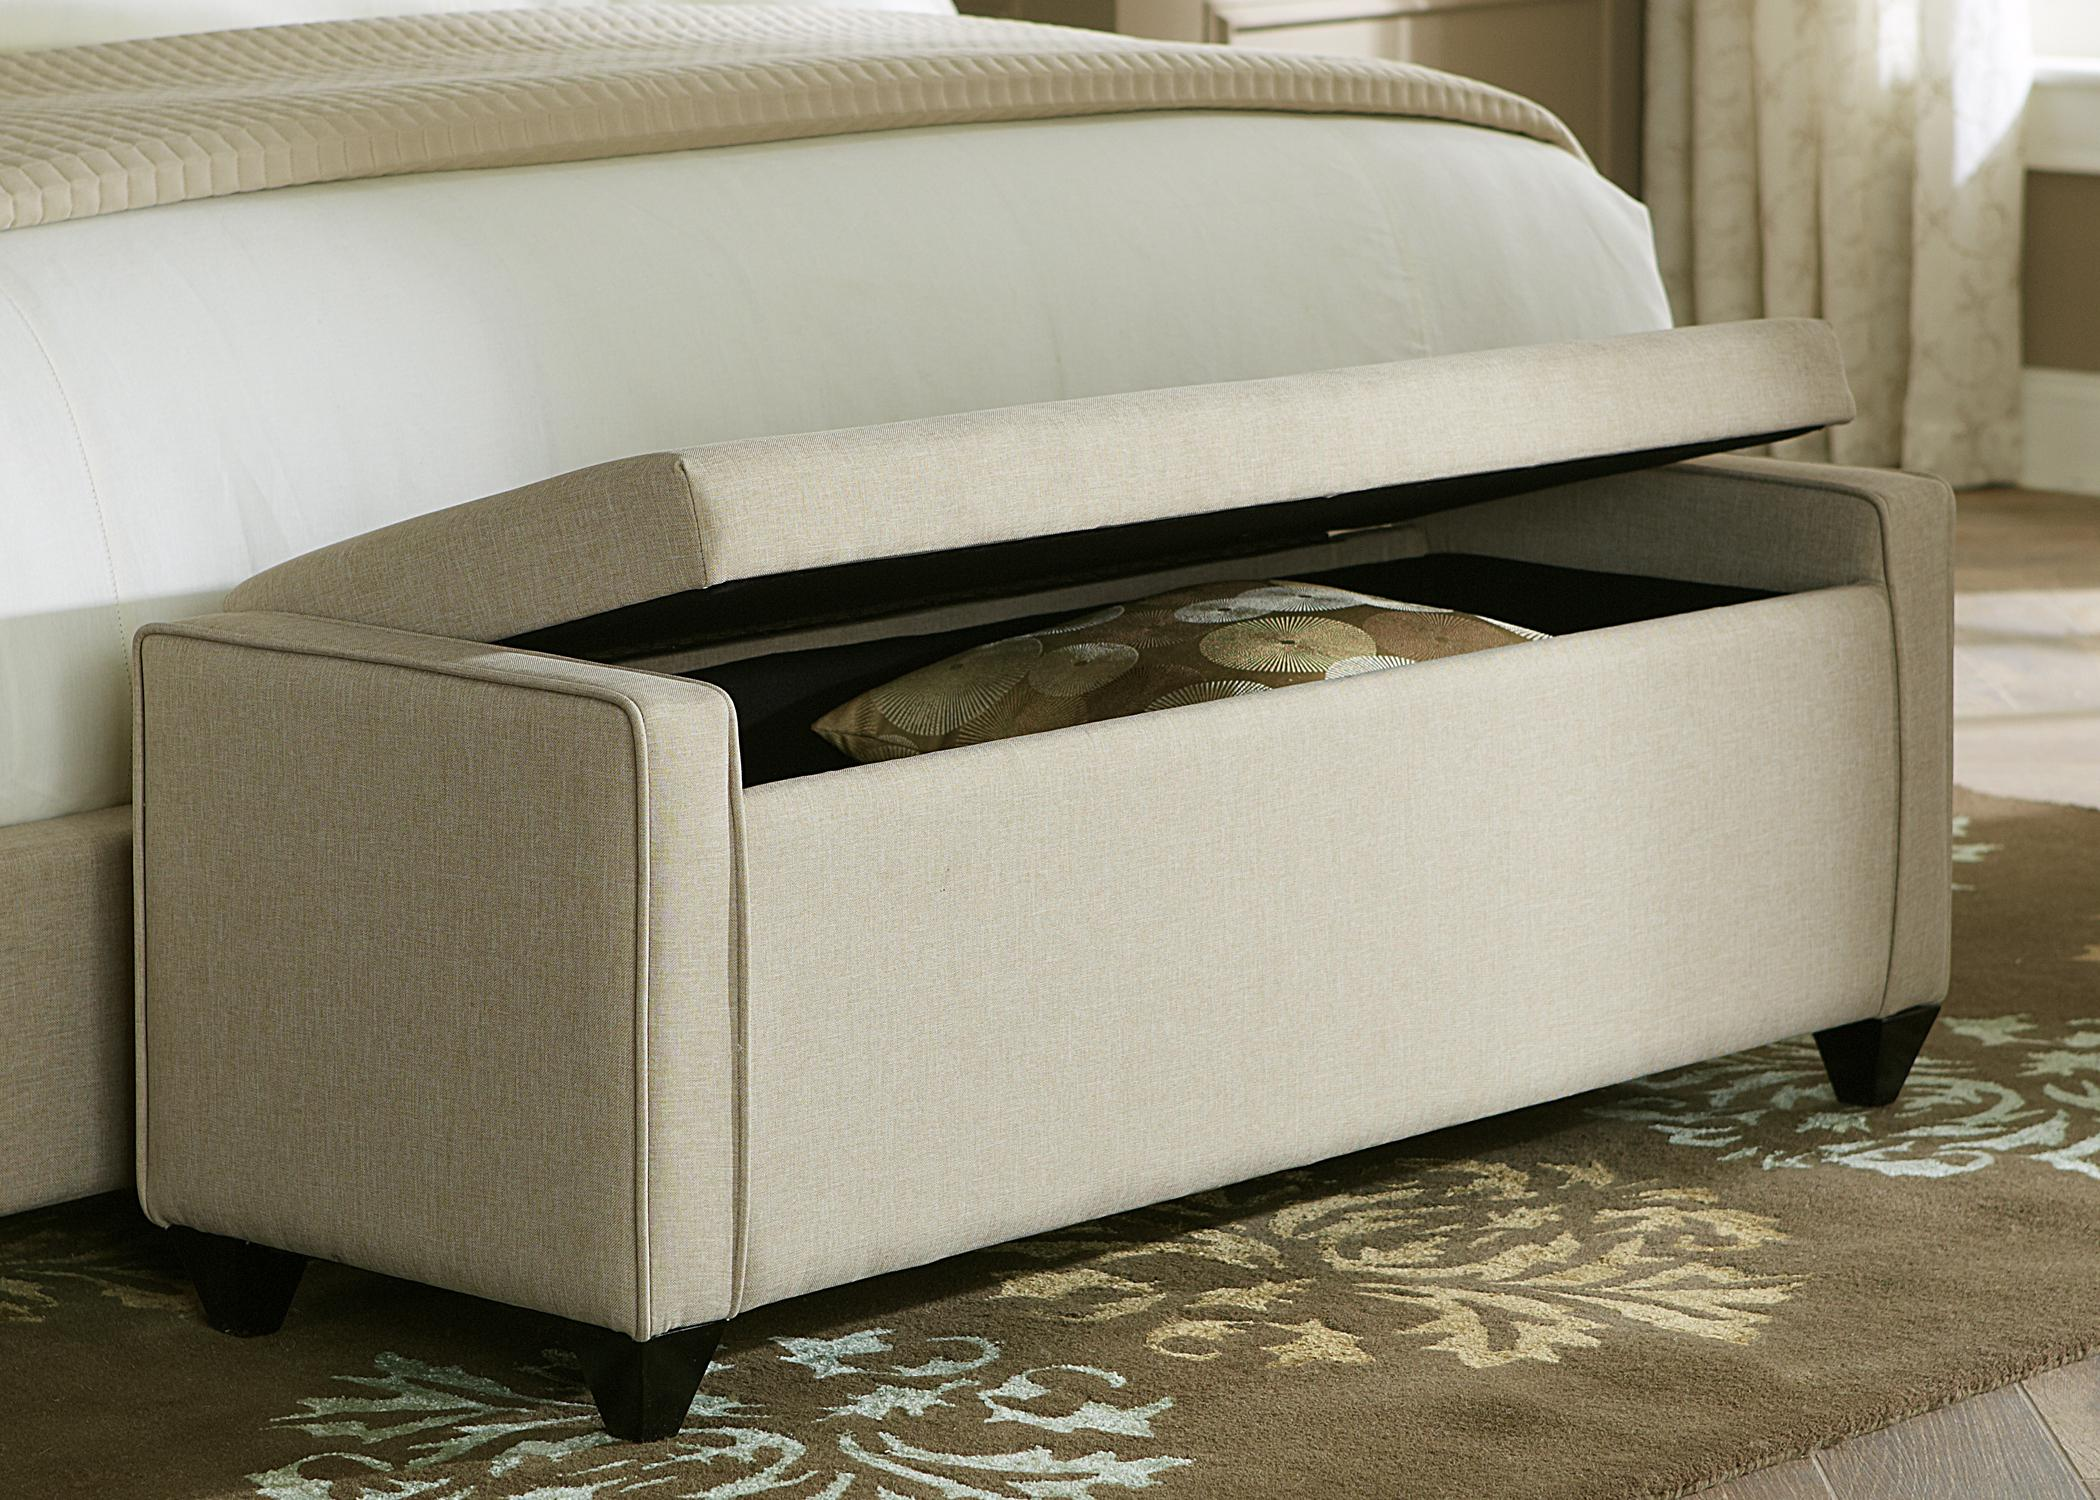 Upholstered beds lift top bed bench rotmans for Foot of bed furniture